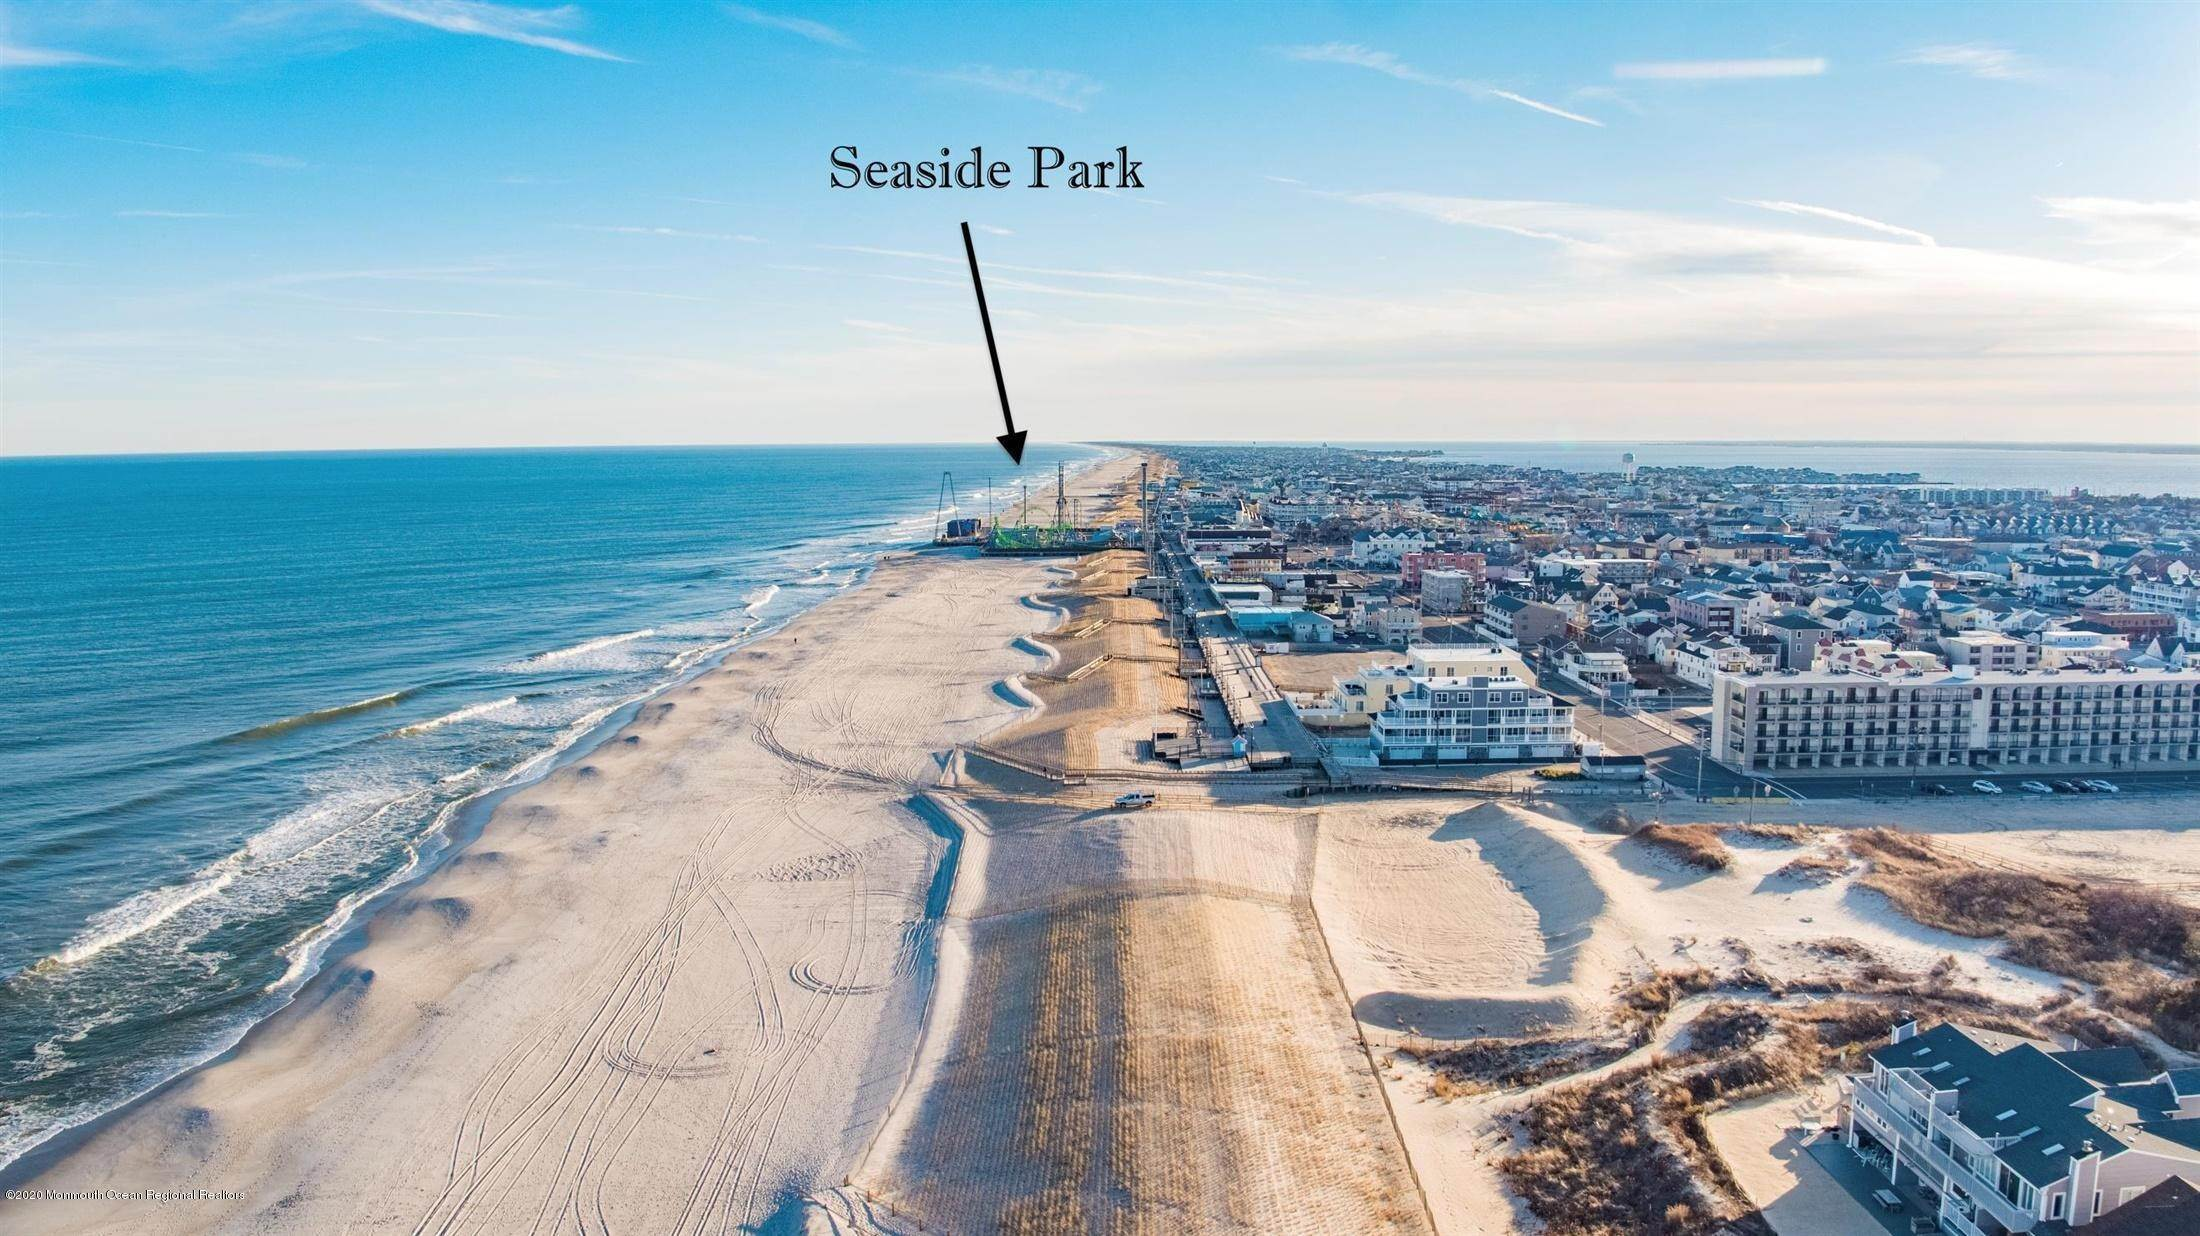 57. Single Family Home for Rent at 1728 Oceanfront Ortley Beach, New Jersey, 08751 United States